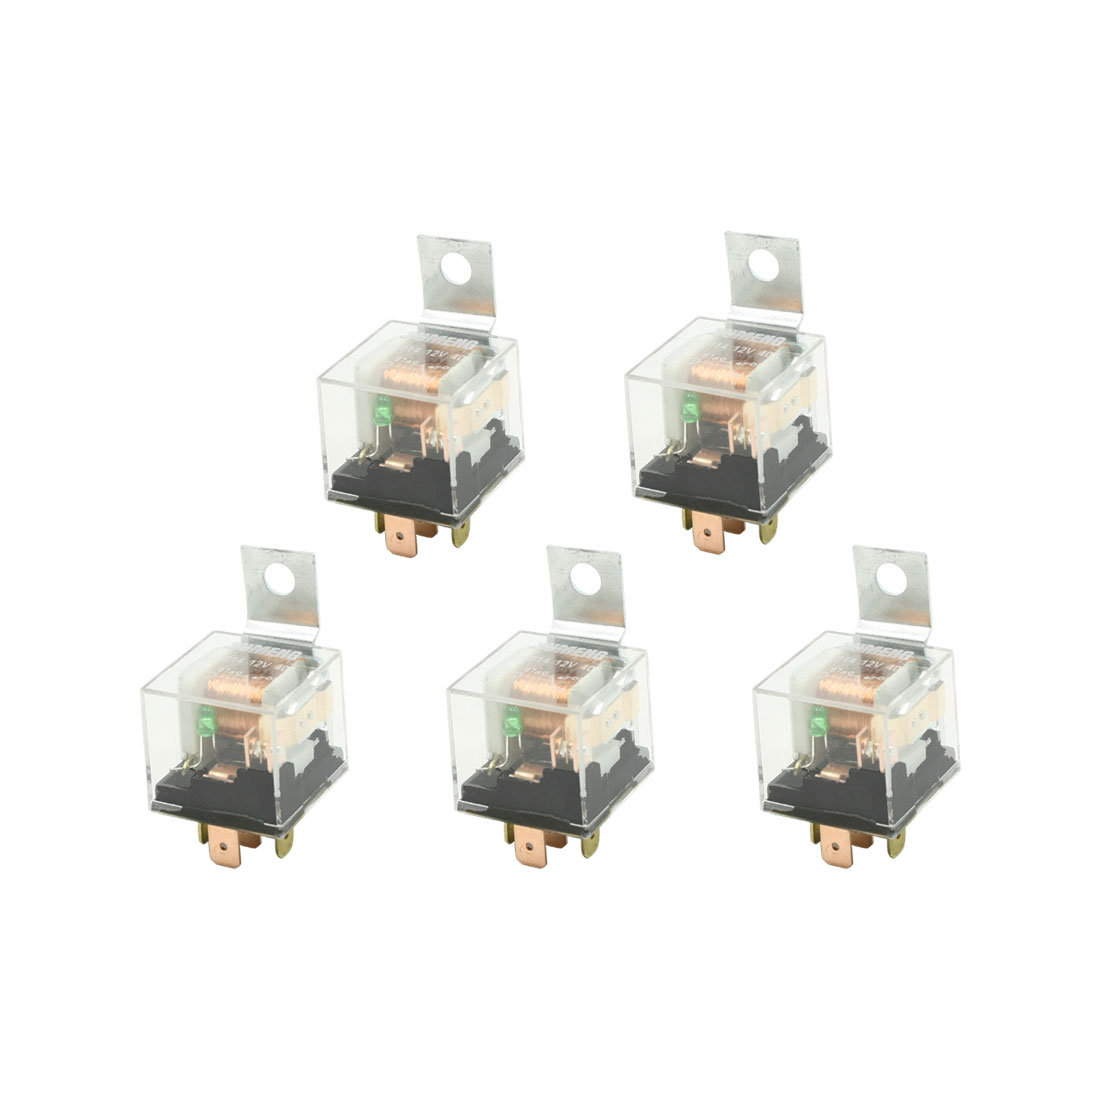 12VDC 40A 5P 1NO 1NC SPDT Green Indicator Auto Car Power Relay 5 Pcs